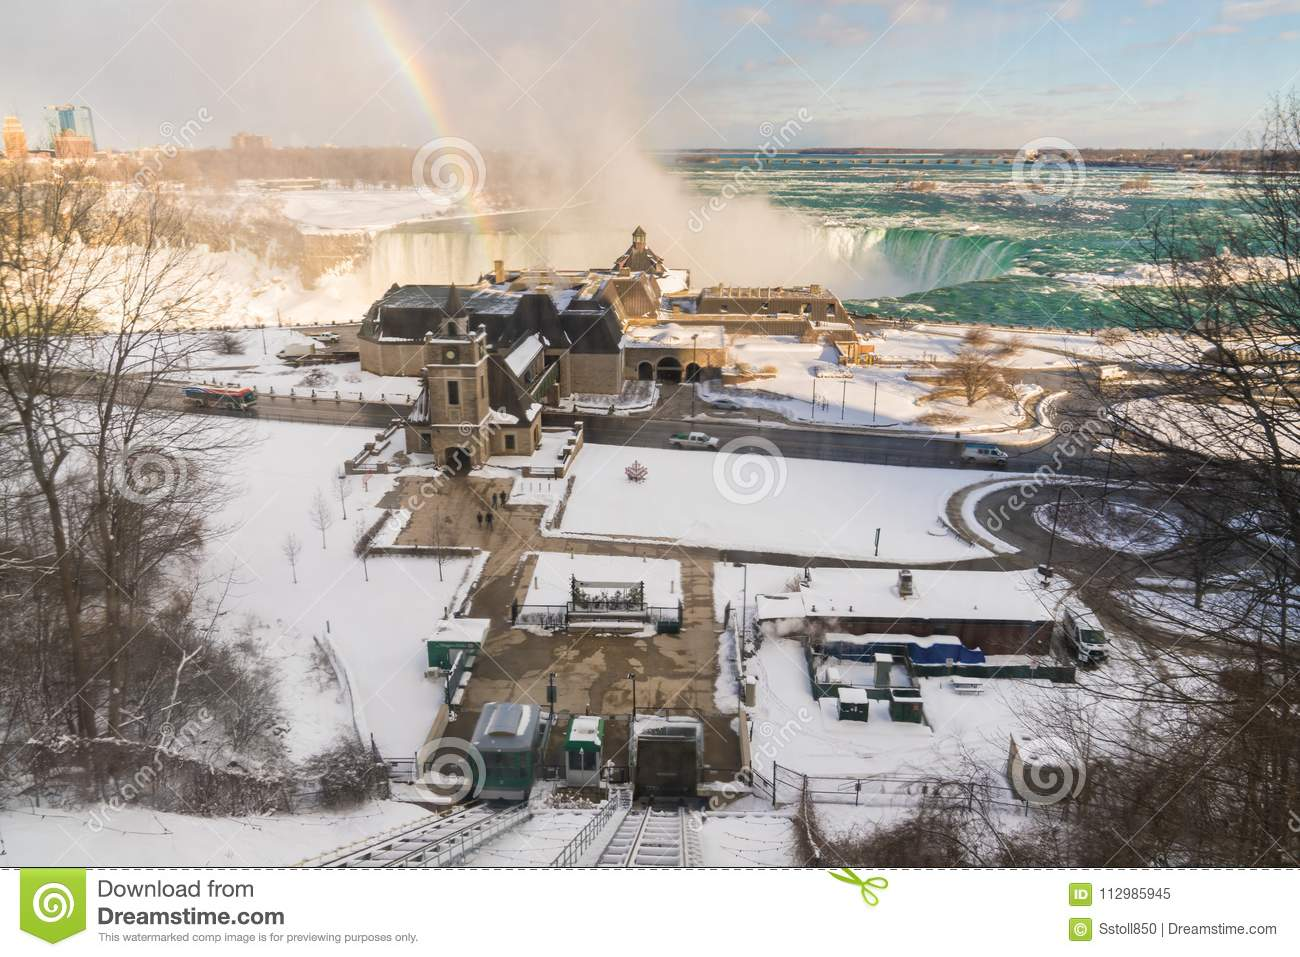 Niagara Falls from above with rainbow